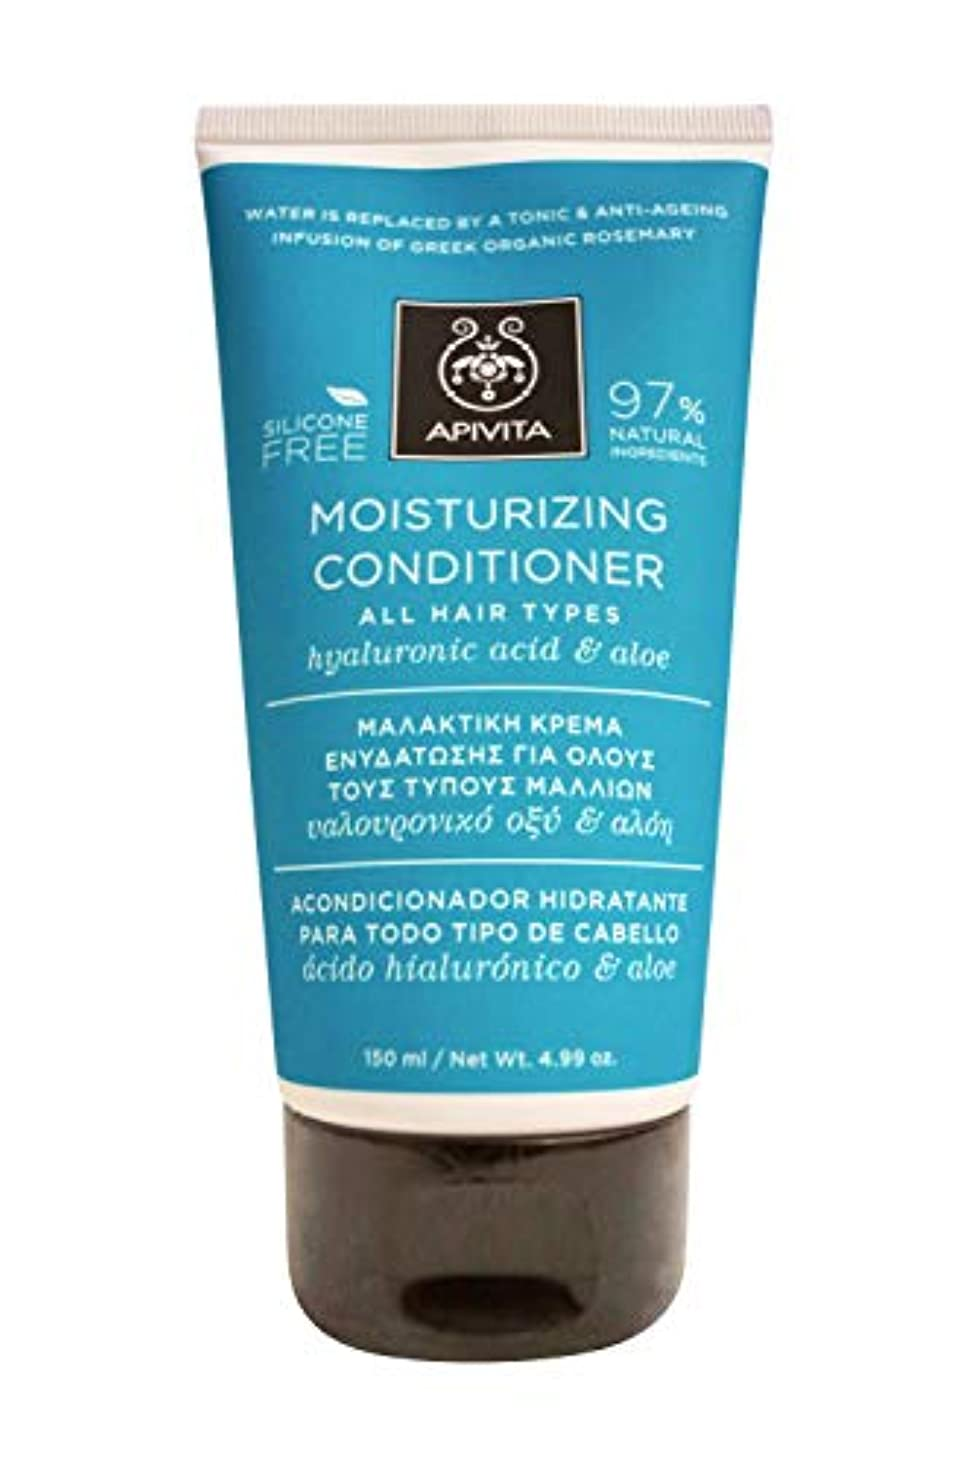 アピヴィータ Moisturizing Conditioner with Hyaluronic Acid & Aloe (For All Hair Types) 150ml [並行輸入品]